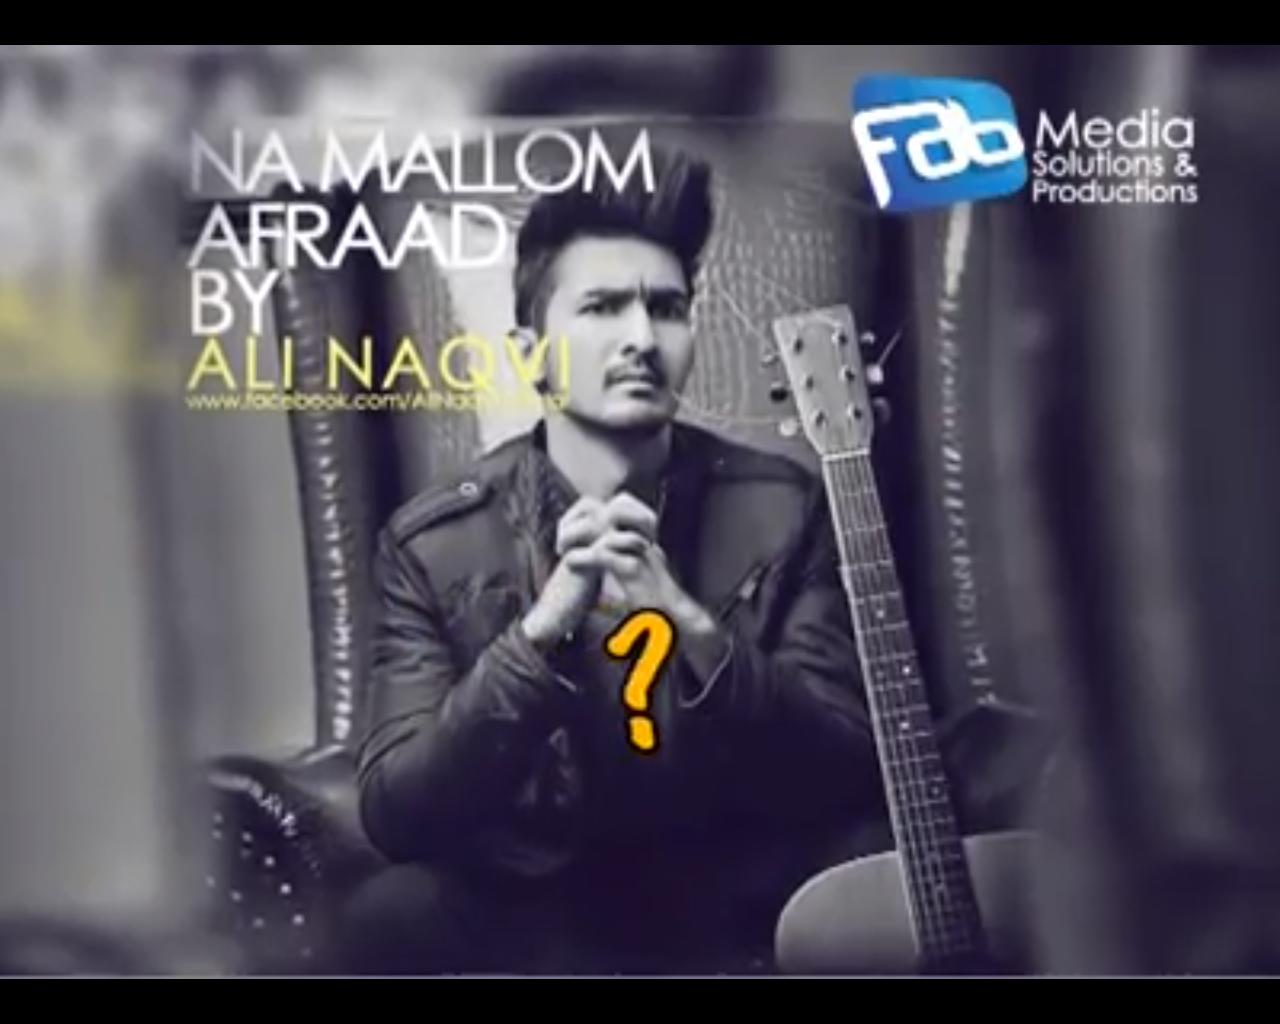 Ali Naqvi - Na Mallom Afraad (Audio Song)